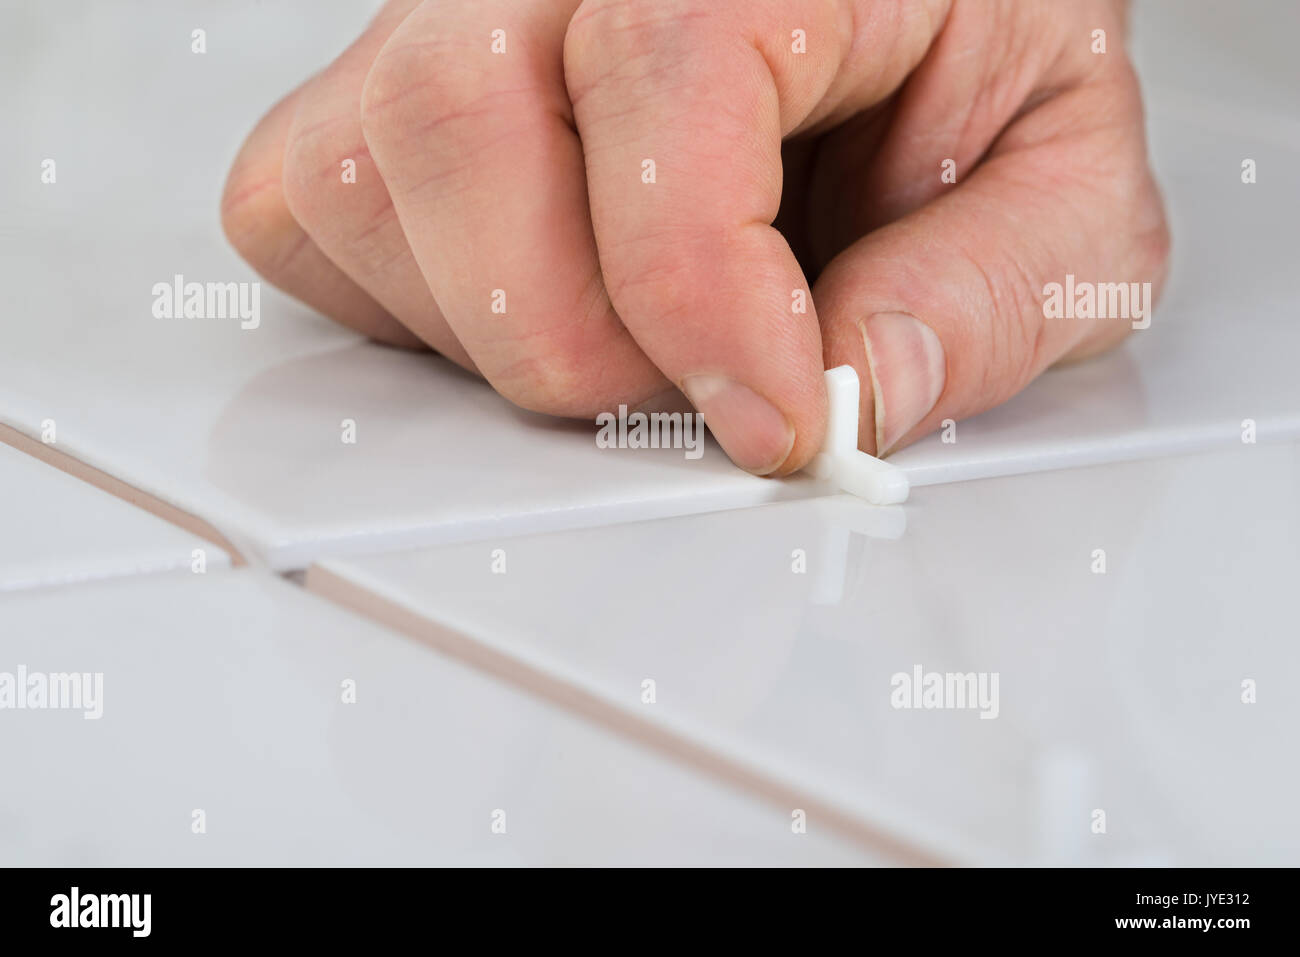 Close-up Of A Person's Hand Placing Spacers Between Ceramic Floor Tiles - Stock Image